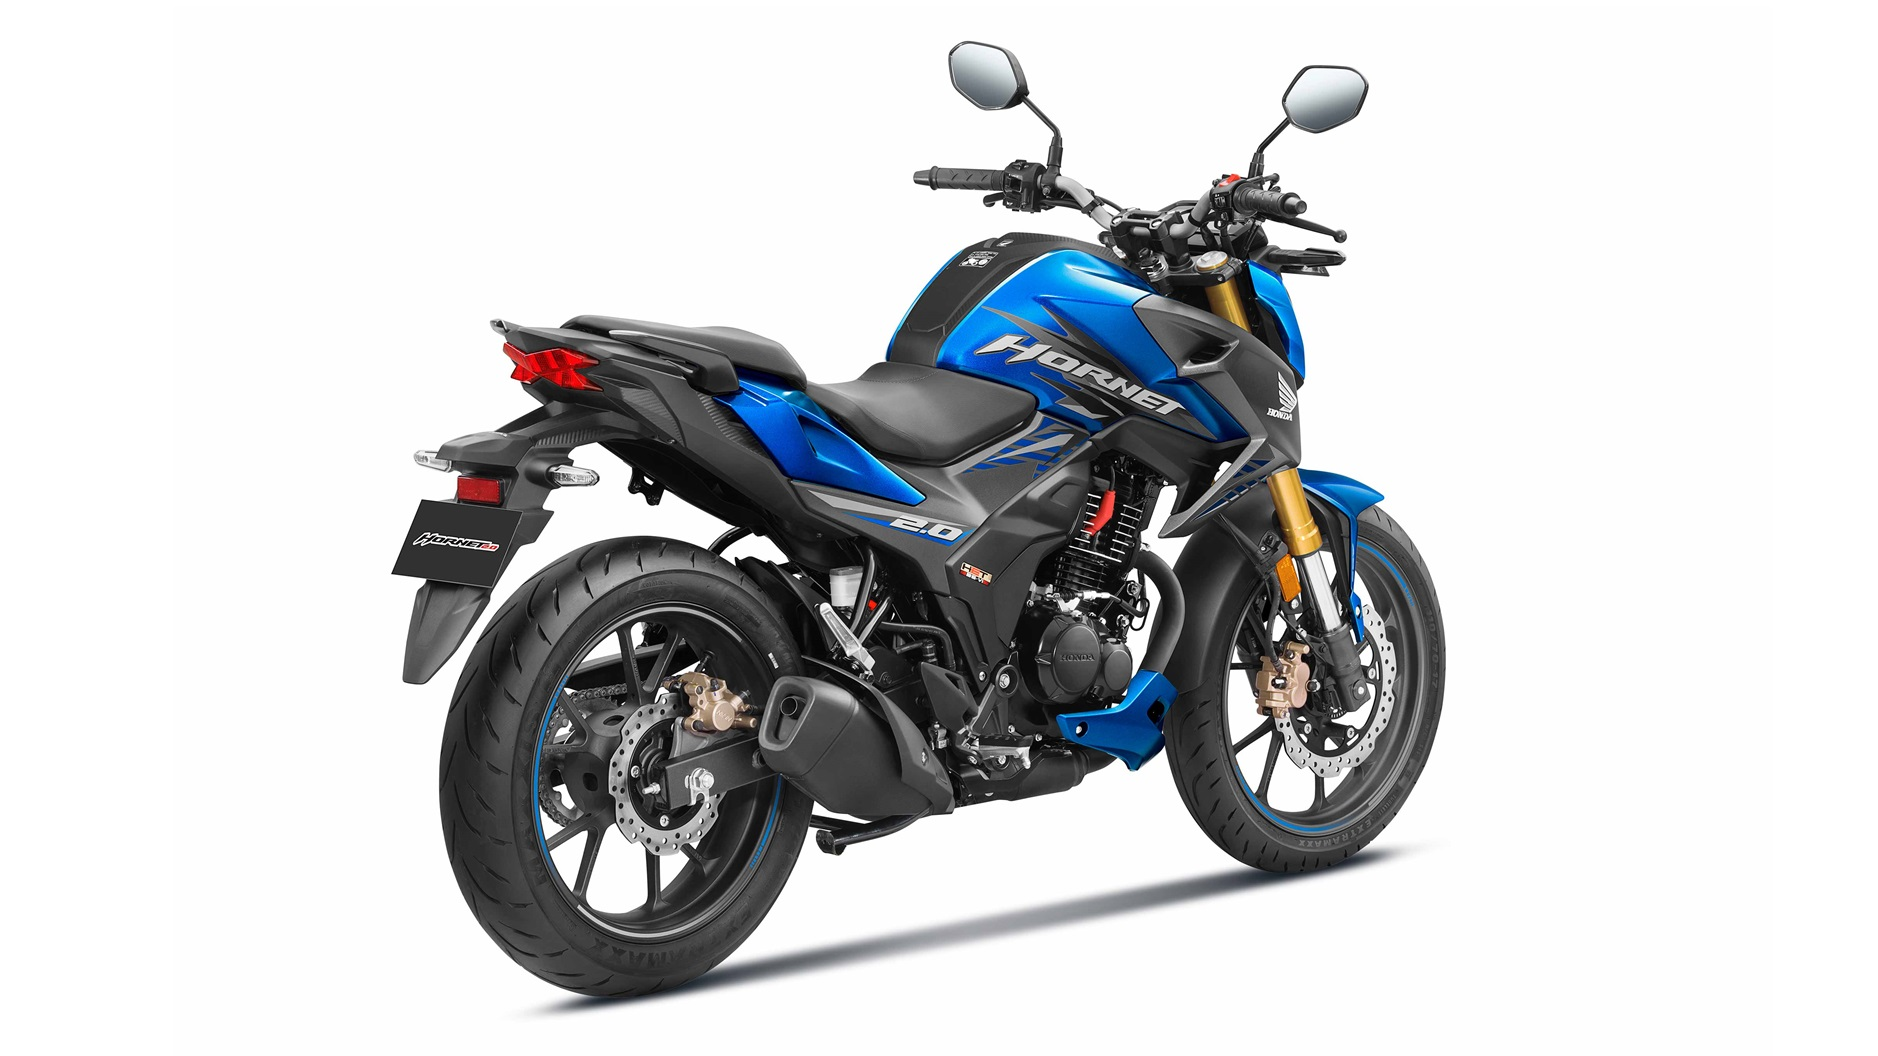 New 2020 Honda Hornet 2.0 colour options